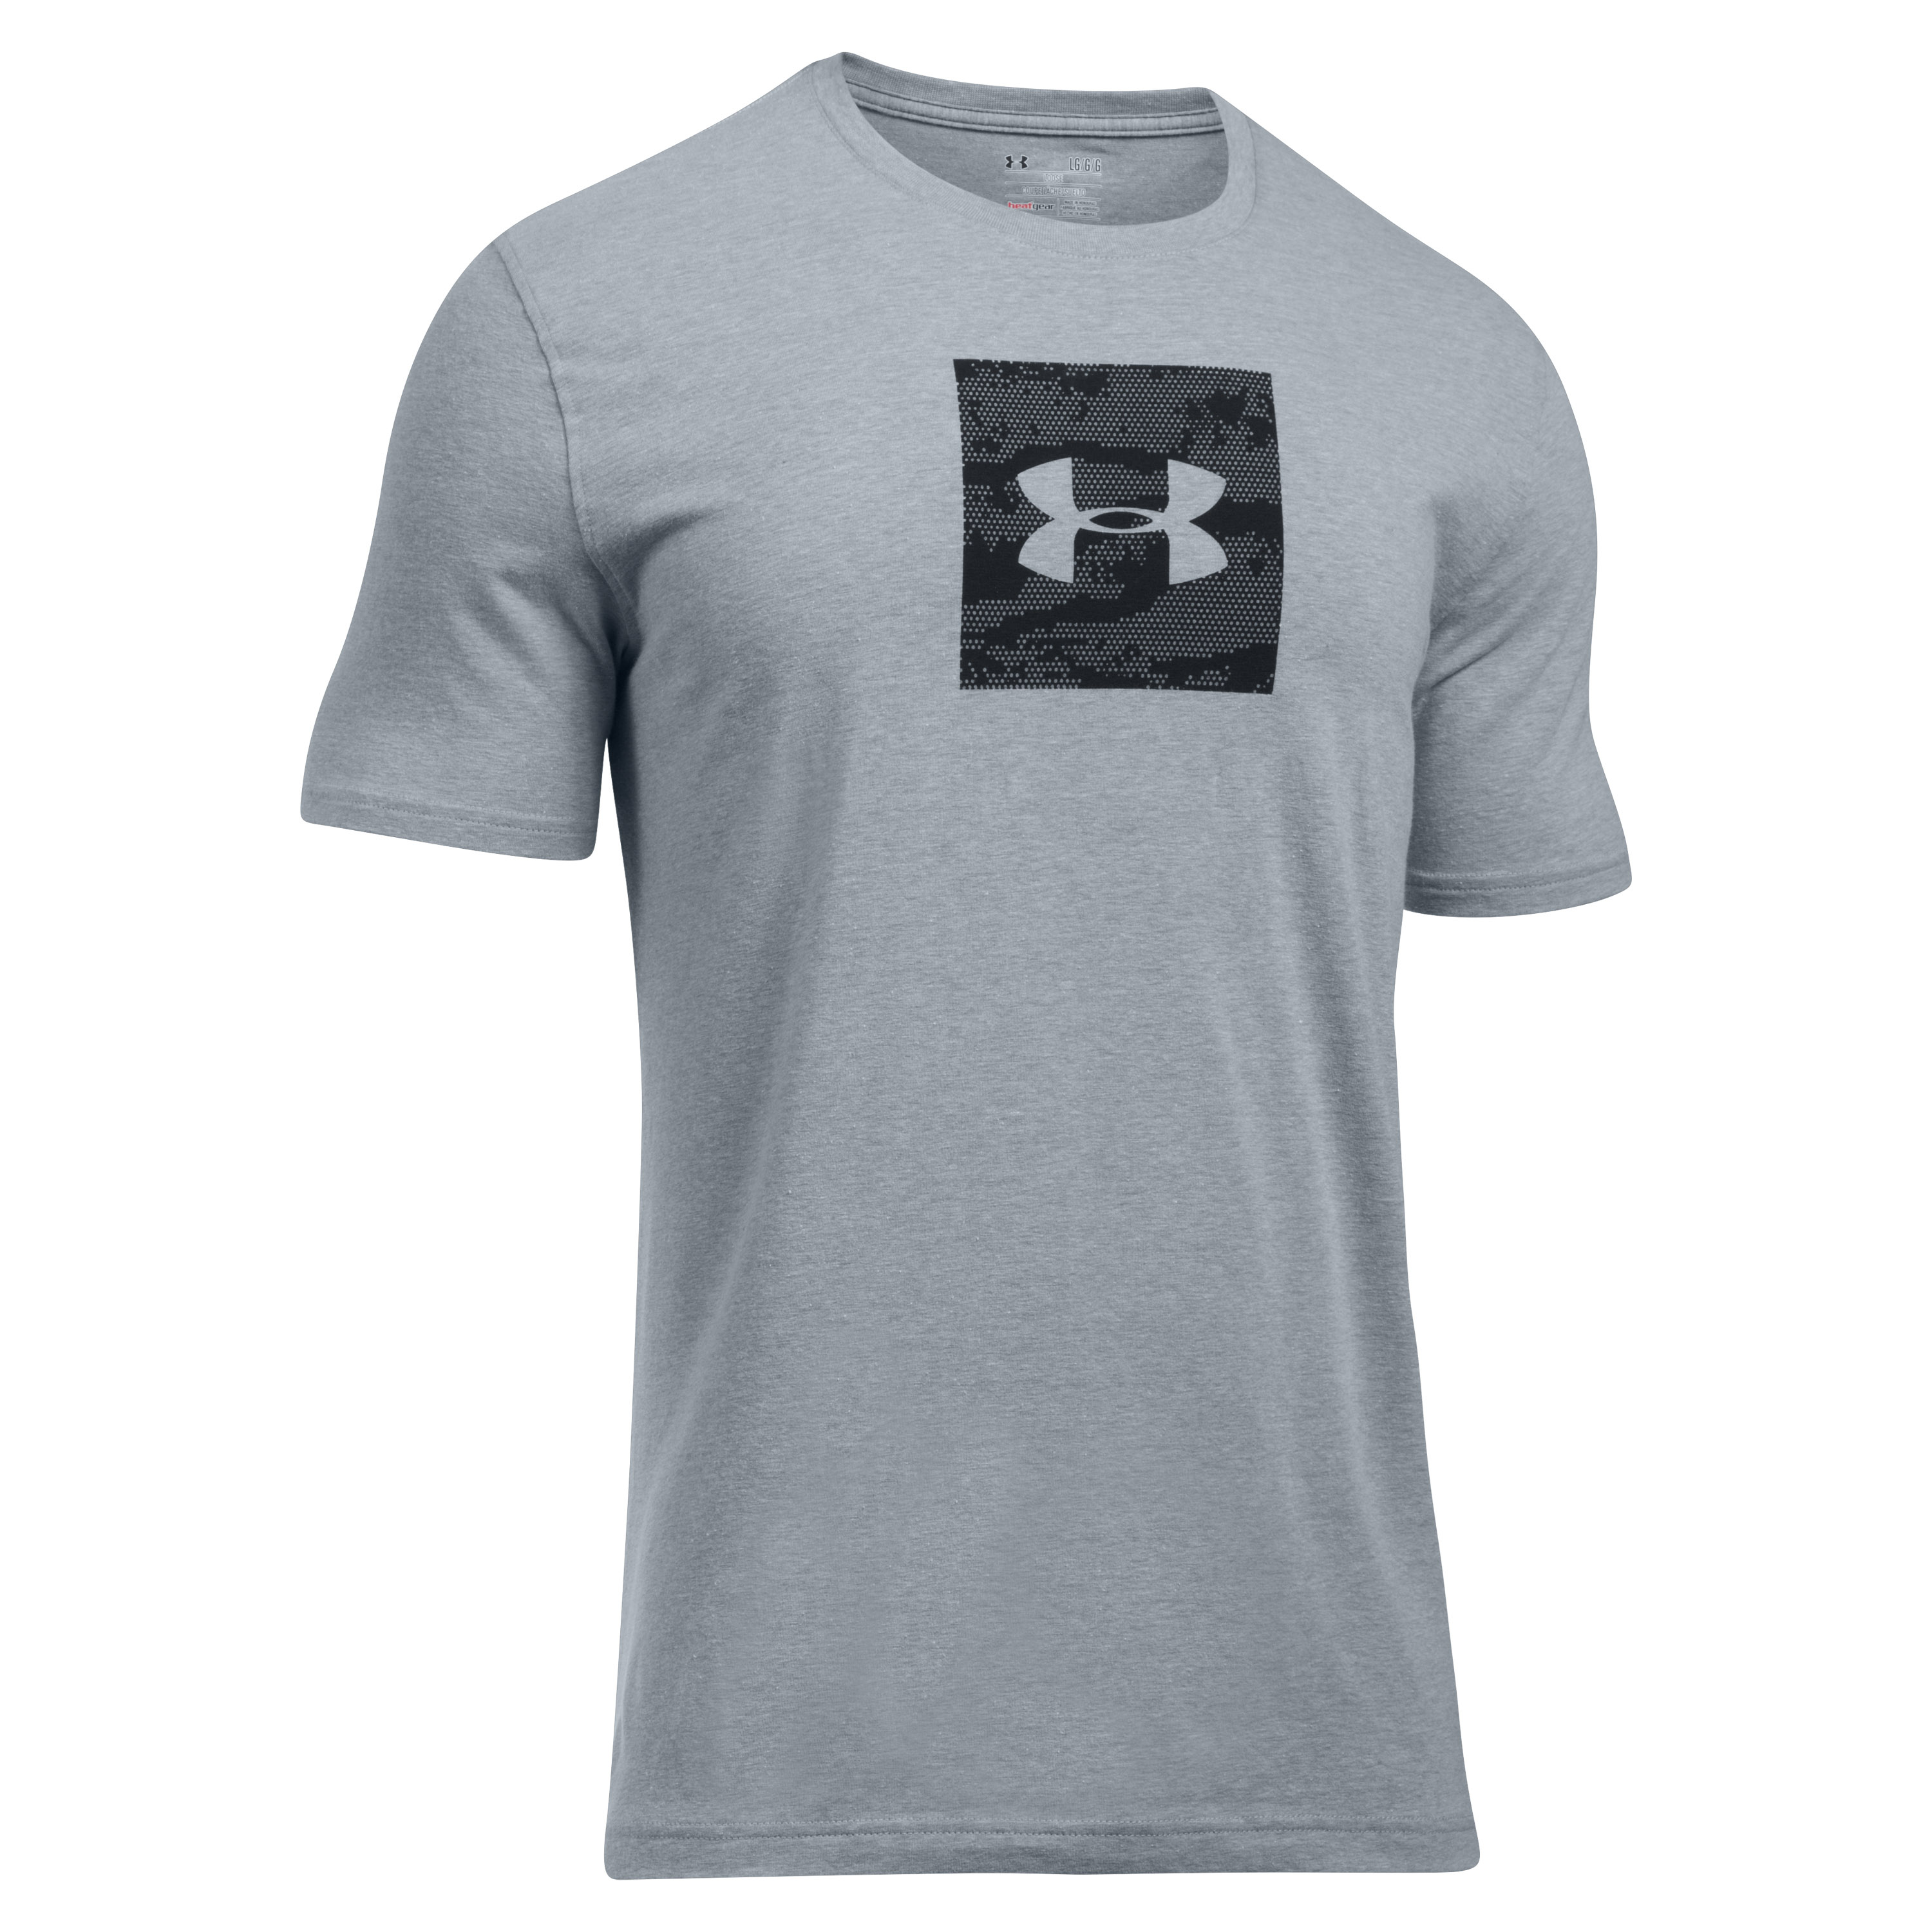 Under Armour T-Shirt Camo Boxed Logo SS gray/black